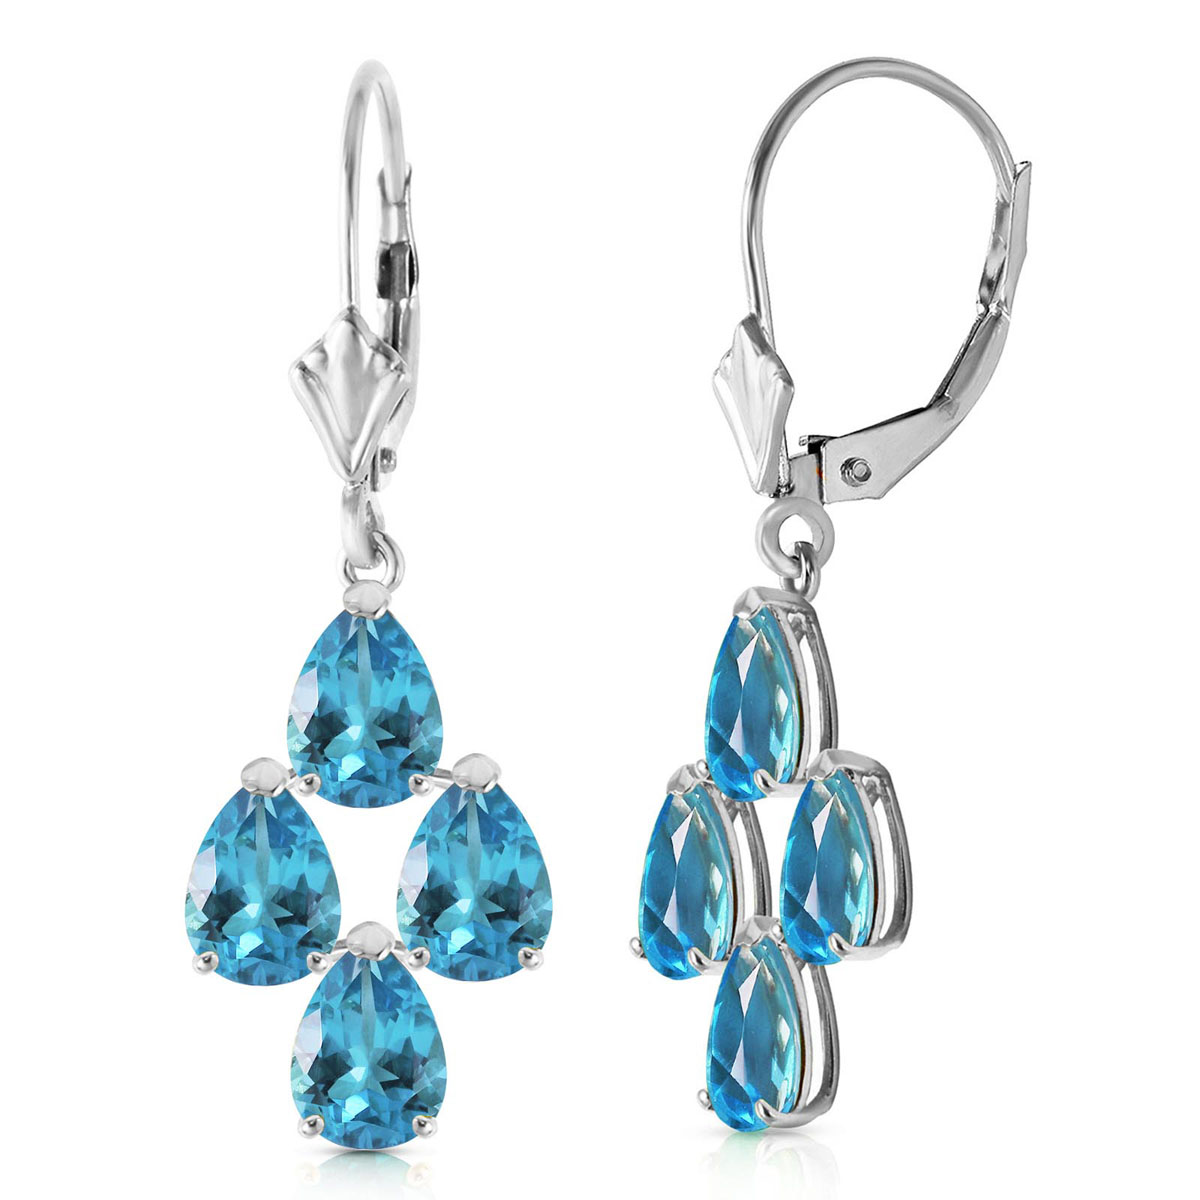 Blue Topaz Drop Earrings 4.5 ctw in 9ct White Gold